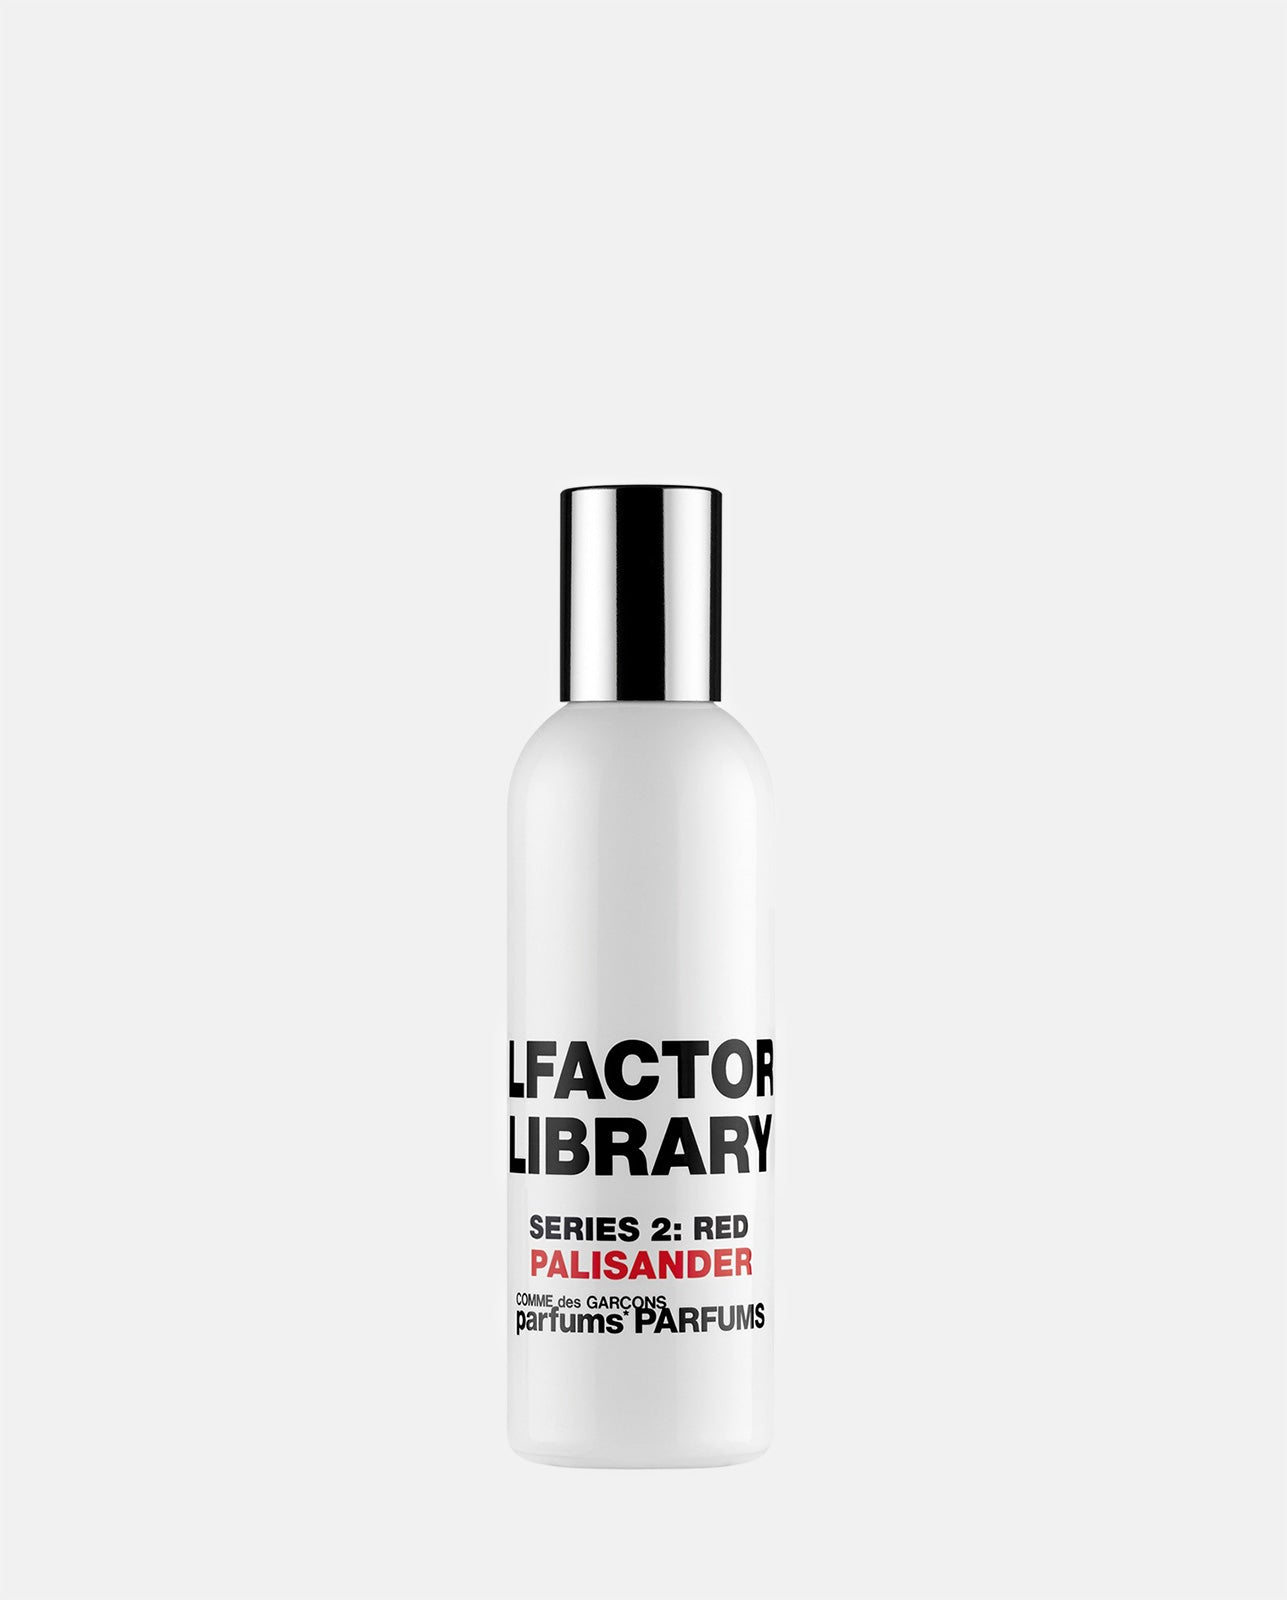 Olfactory Library: Palisander